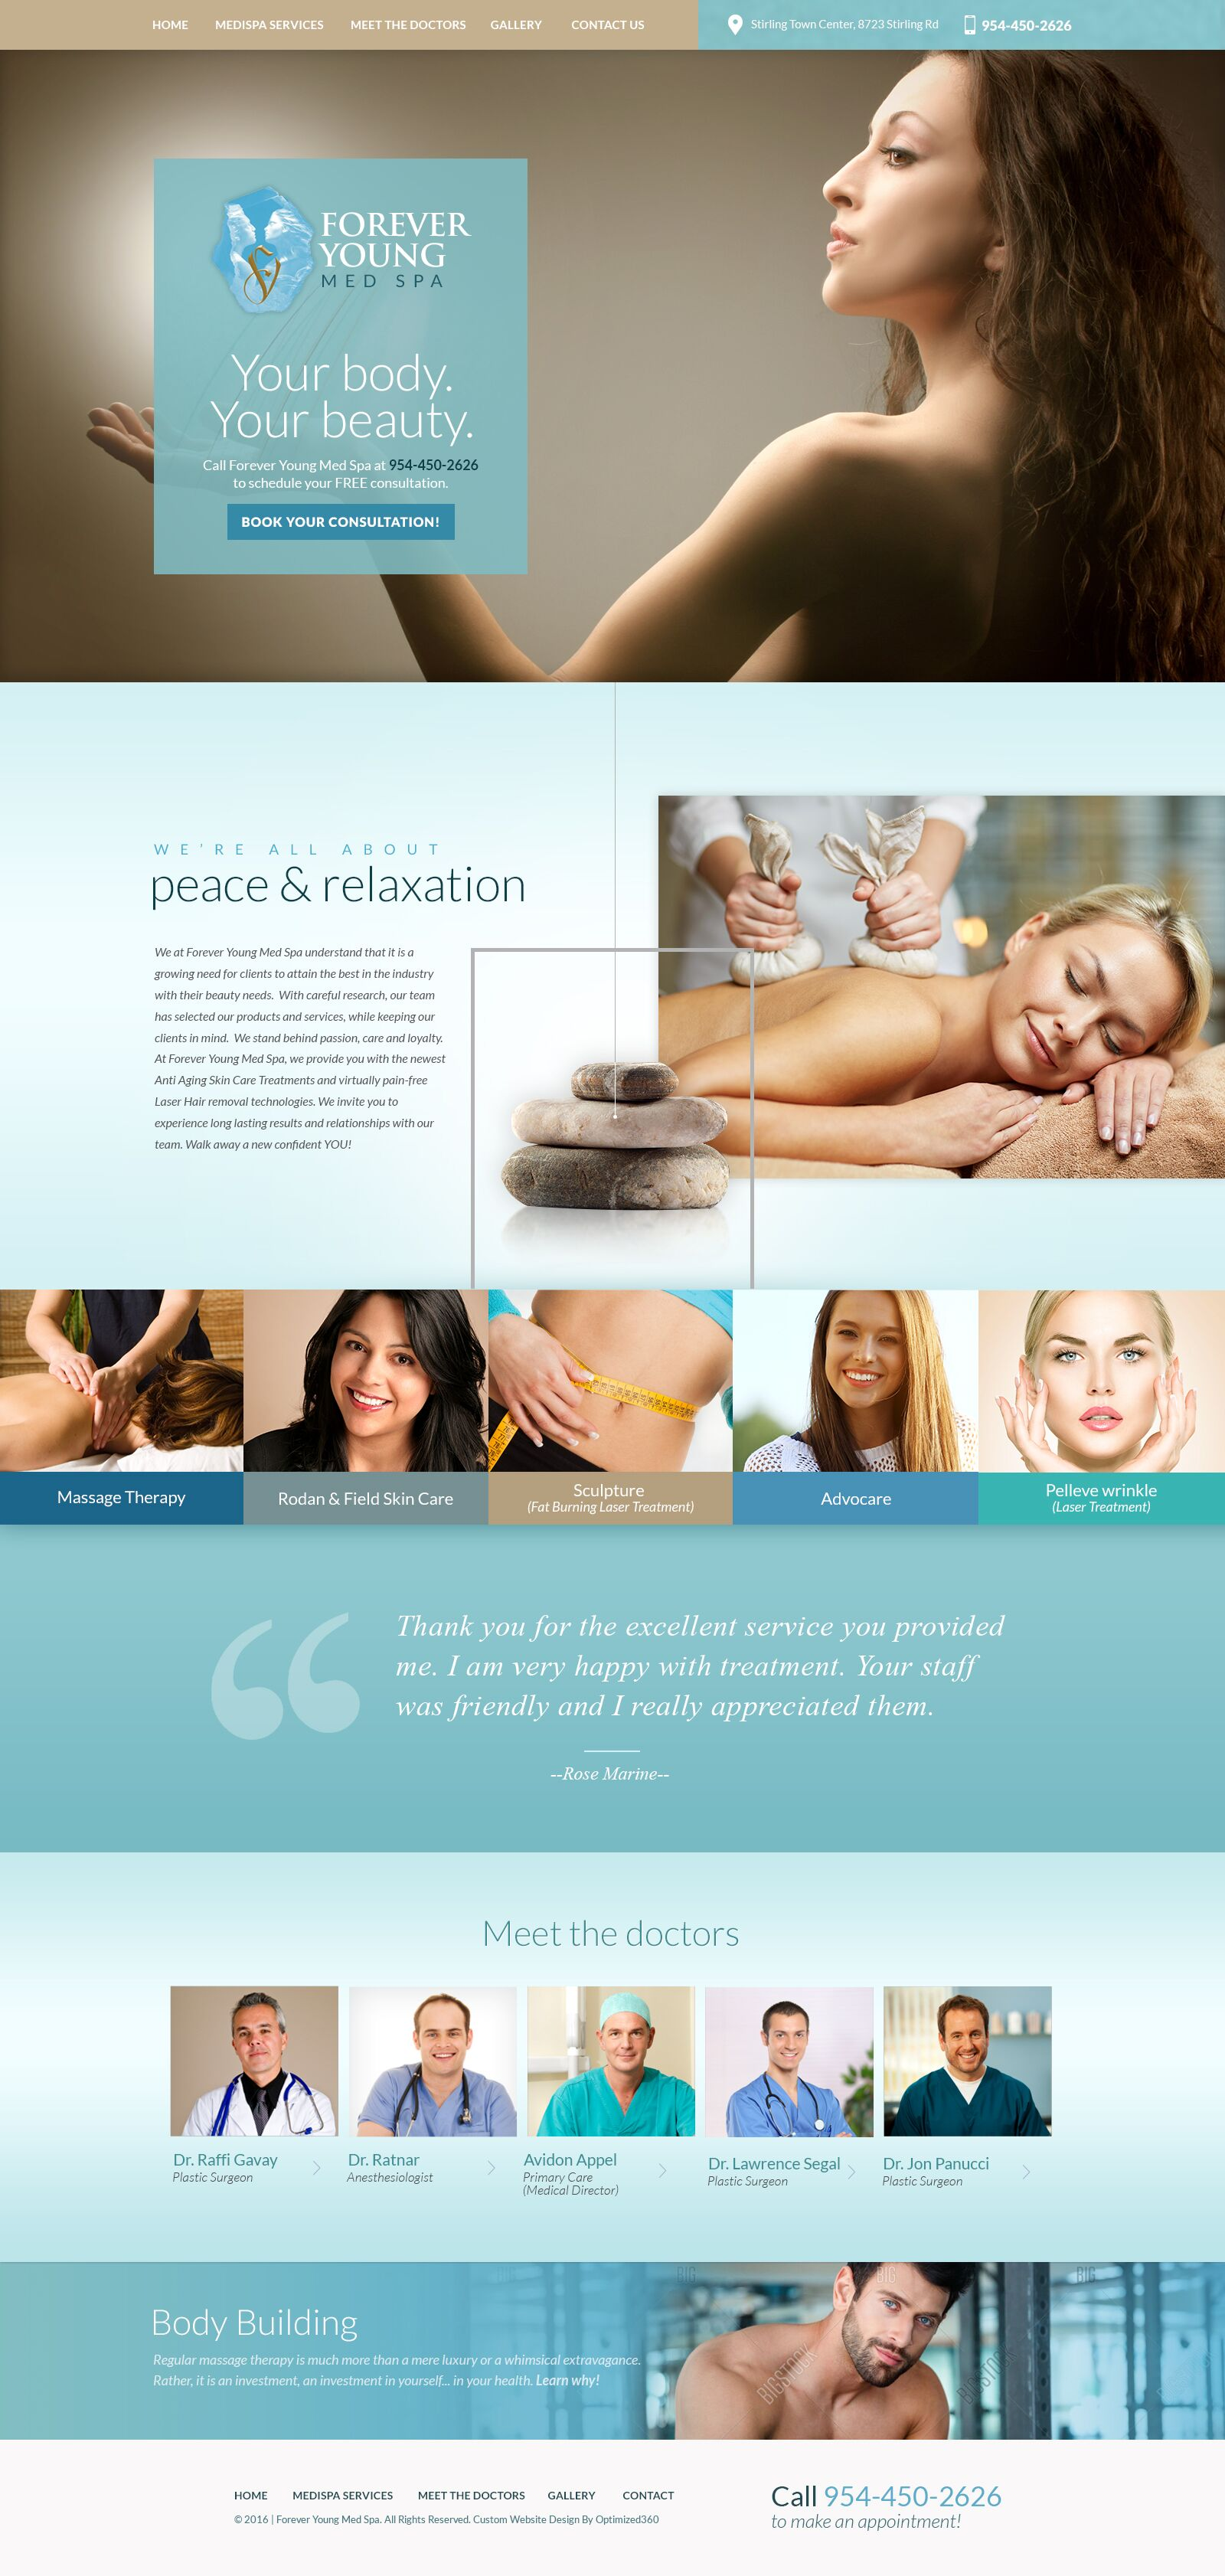 Forever Young Full Page Medical Spa Website